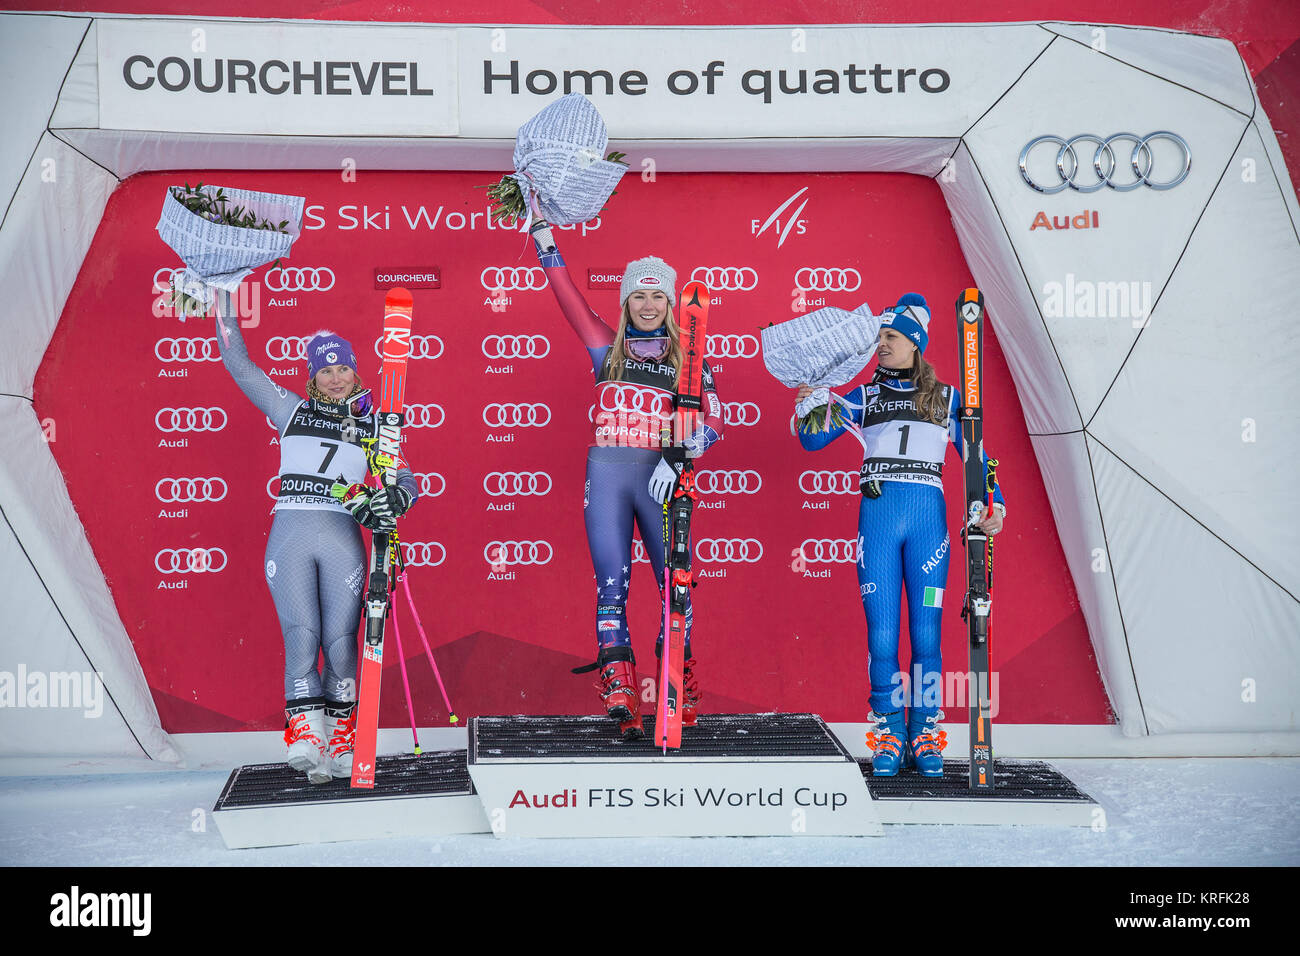 19th December 2017, Courchevel, France - Podium presentation of the women's giant slalom with 1) Mikaela Shiffrin - Stock Image